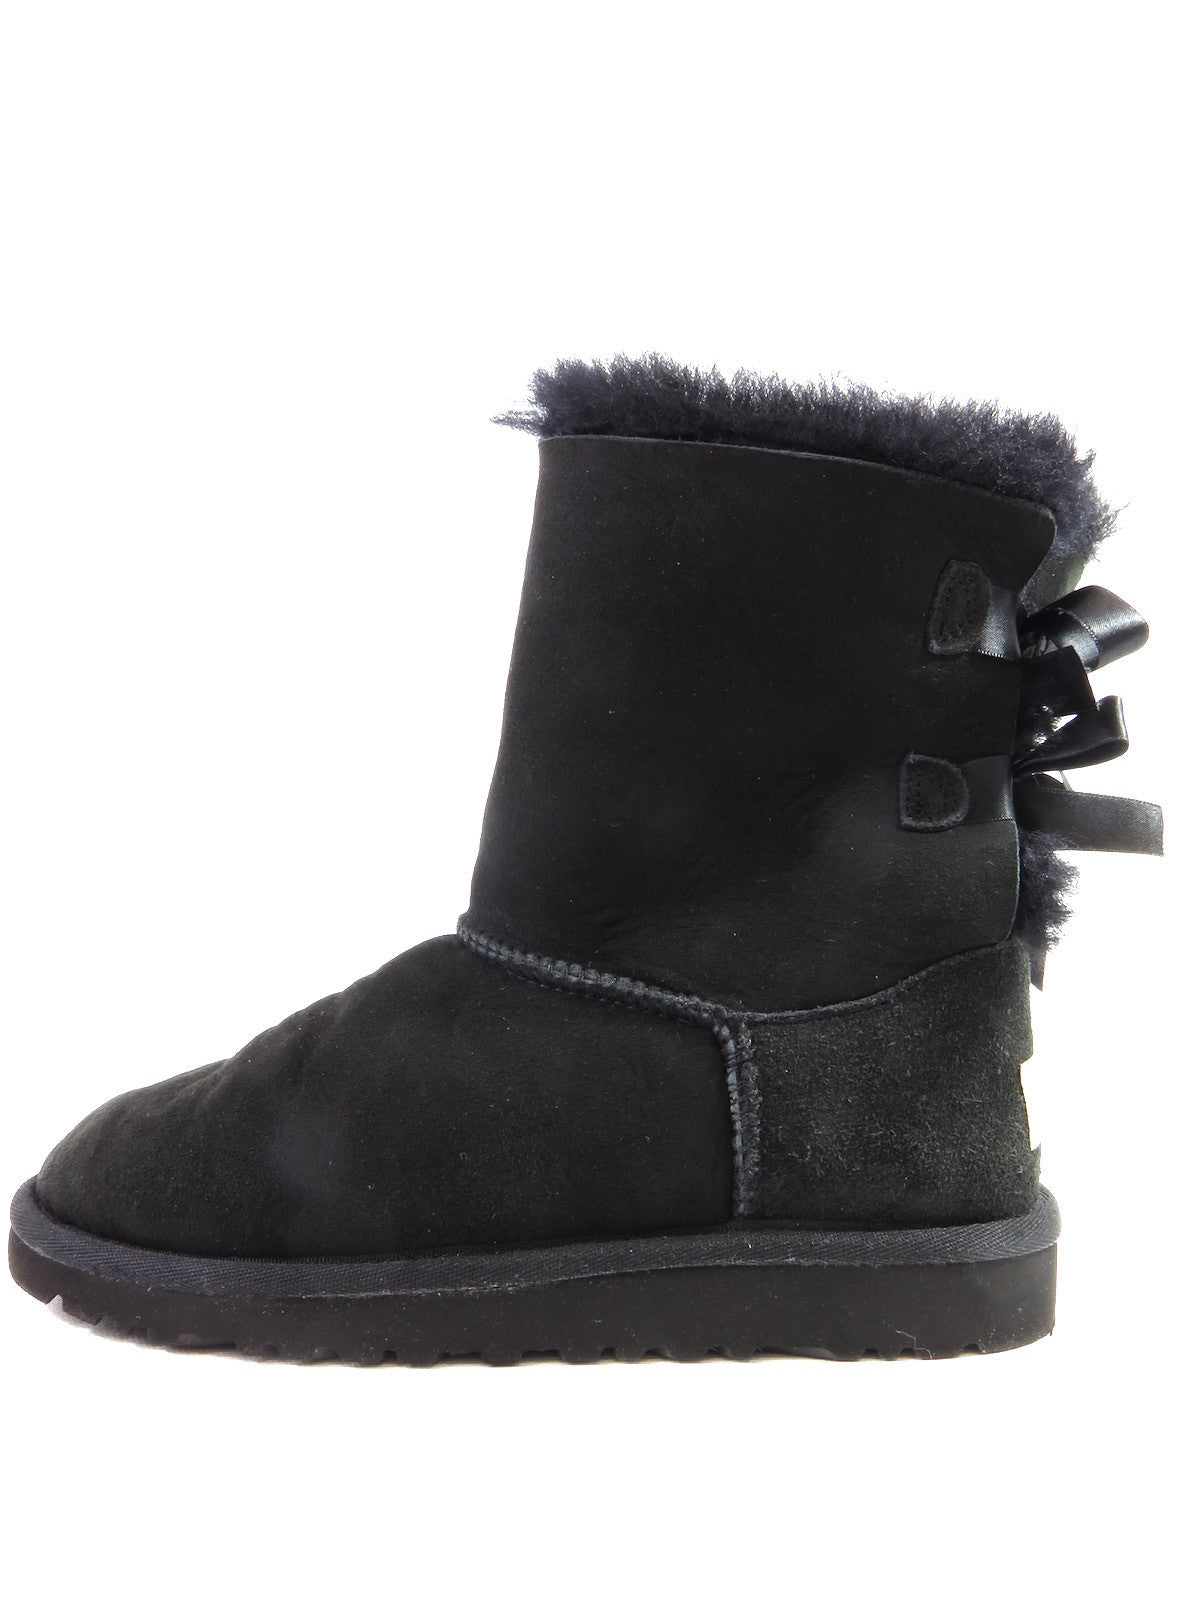 8bd455aa121 low cost ugg bailey bow size 1 694f6 b685b